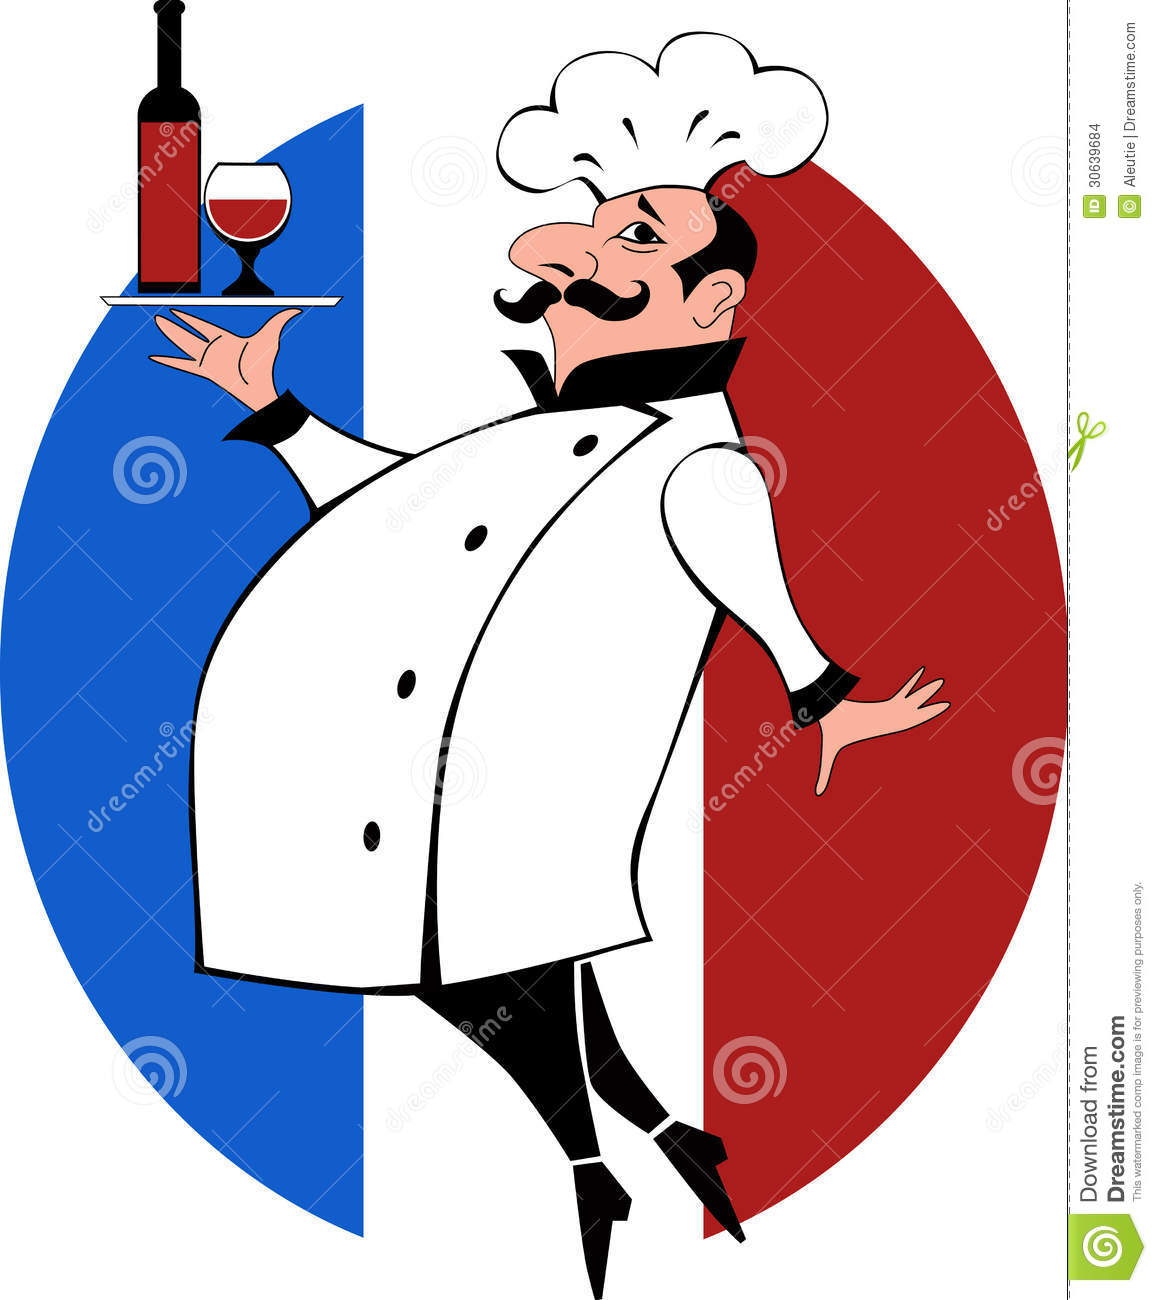 French chef clipart graphic free French Chef Stock Images - Image: 30639684 graphic free